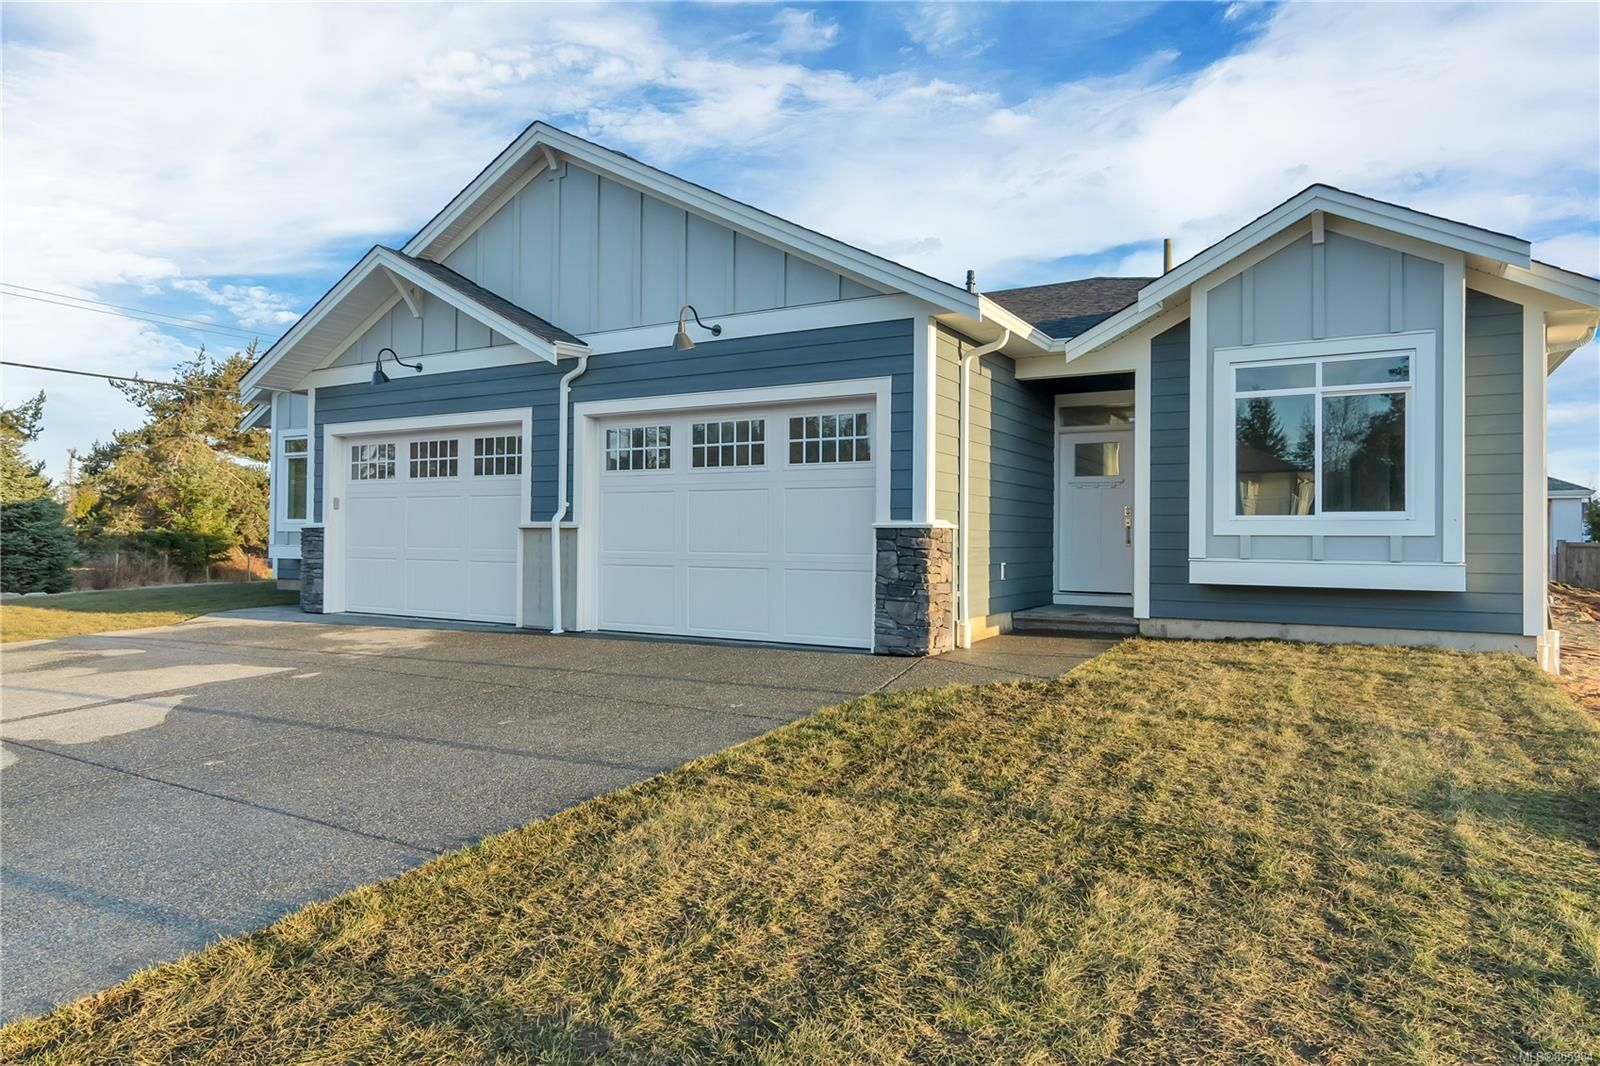 Main Photo: 37 200 Nikola Rd in : CR Campbell River West Row/Townhouse for sale (Campbell River)  : MLS®# 855984